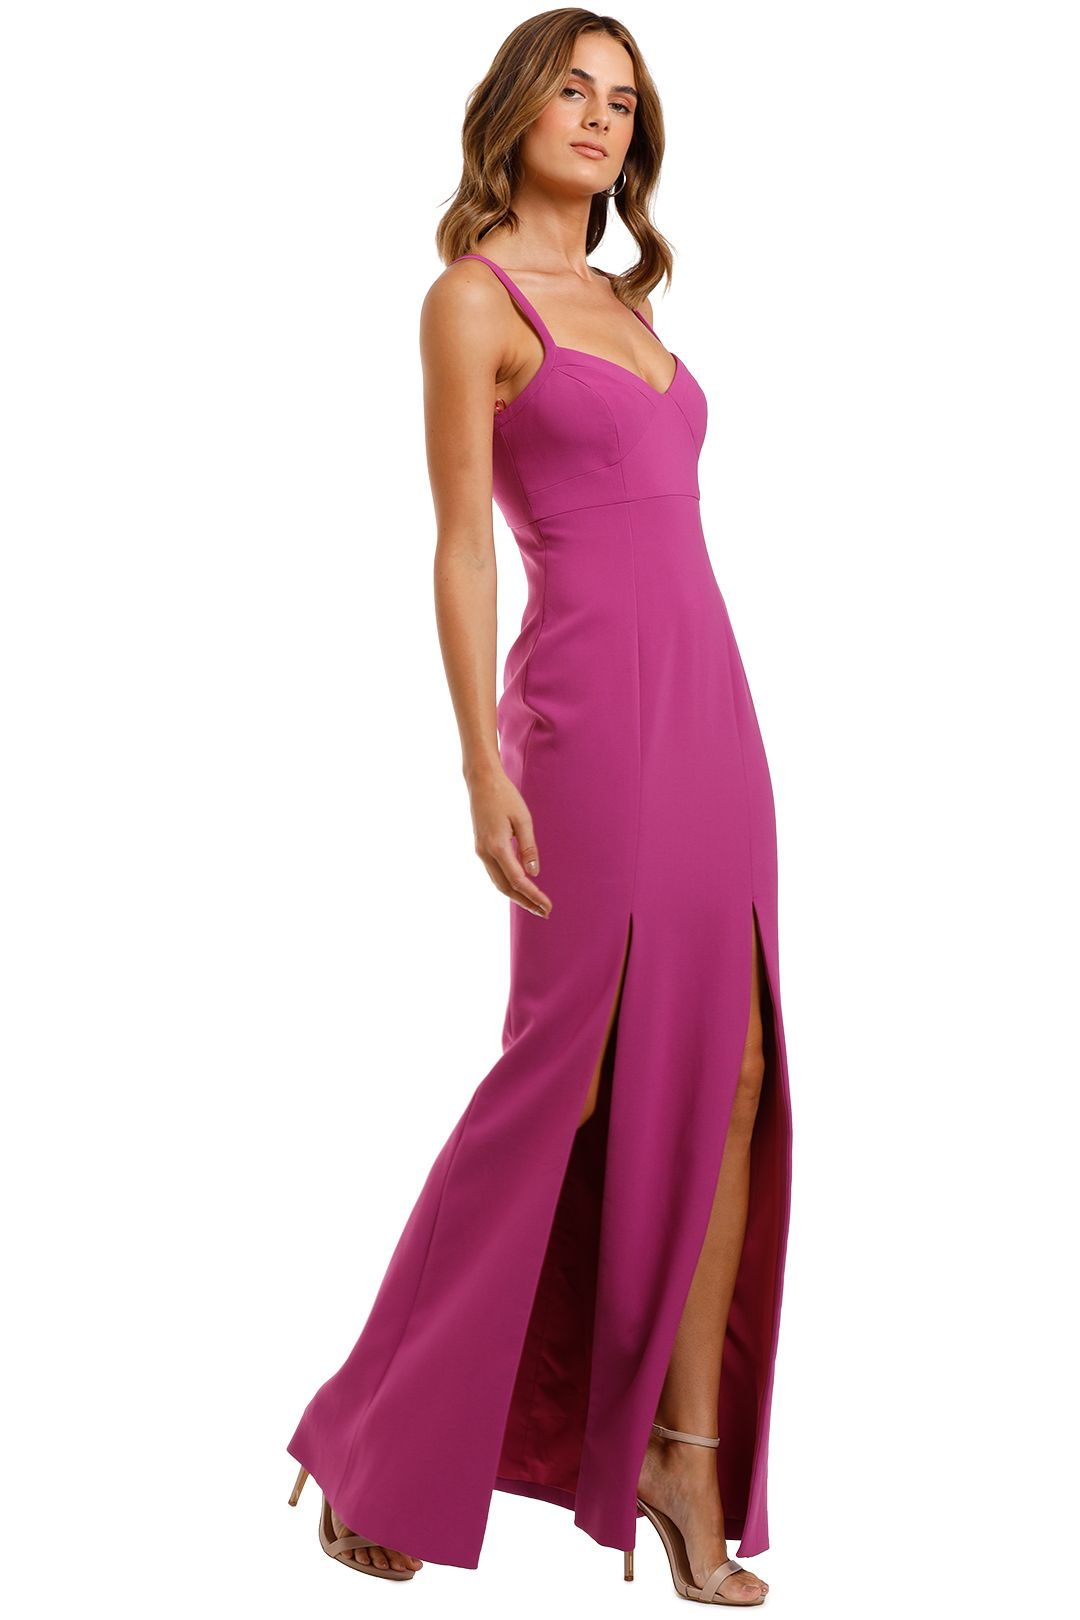 Likely NYC Alameda Gown Maxi